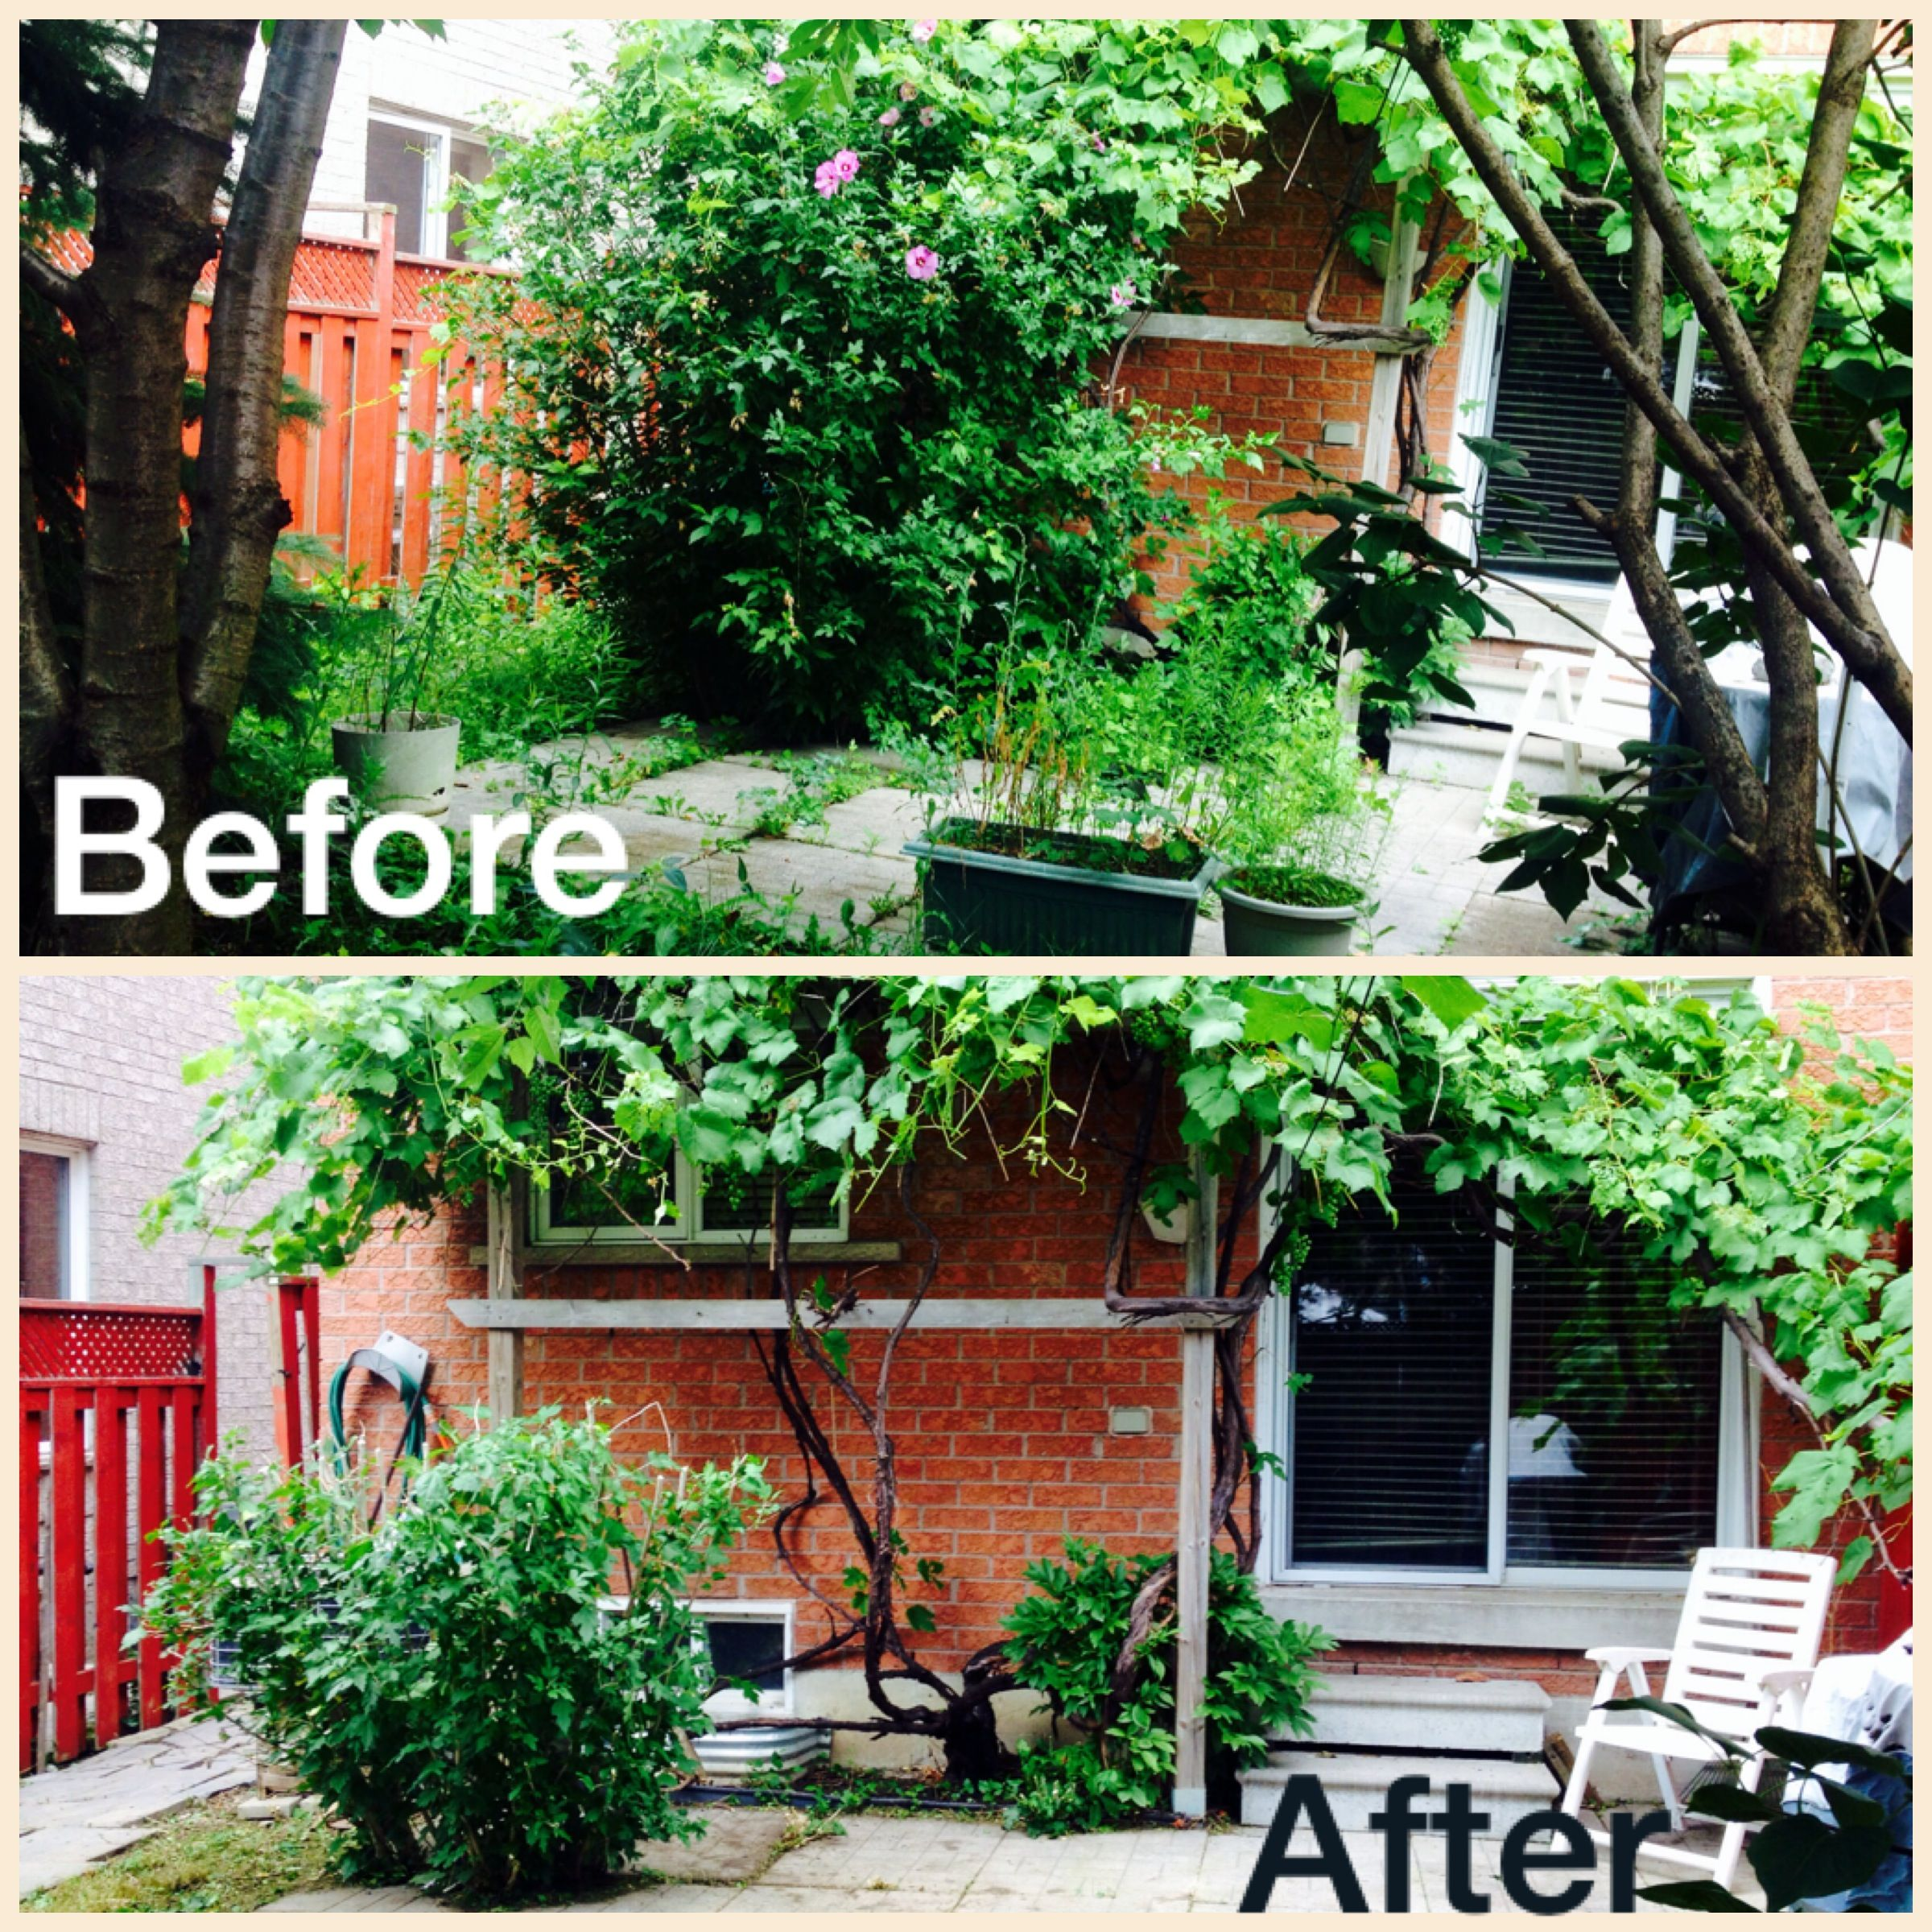 now the backyard entrance is clear before and after some major